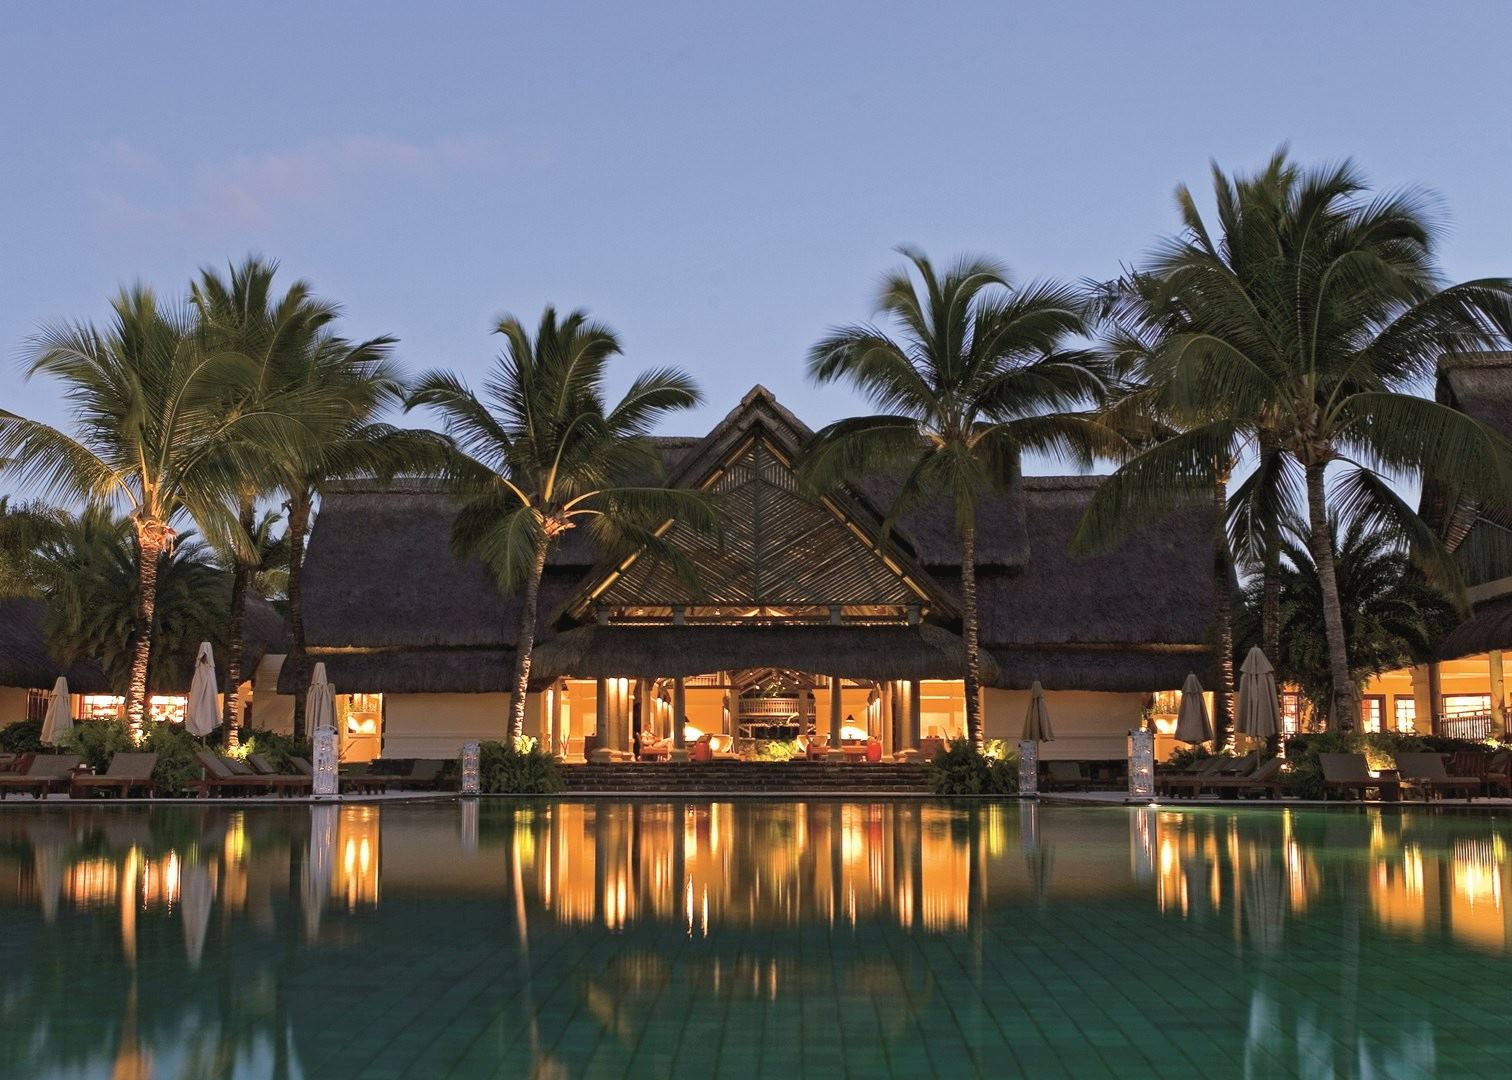 Constance le prince maurice hotels in mauritius audley for Design hotel mauritius